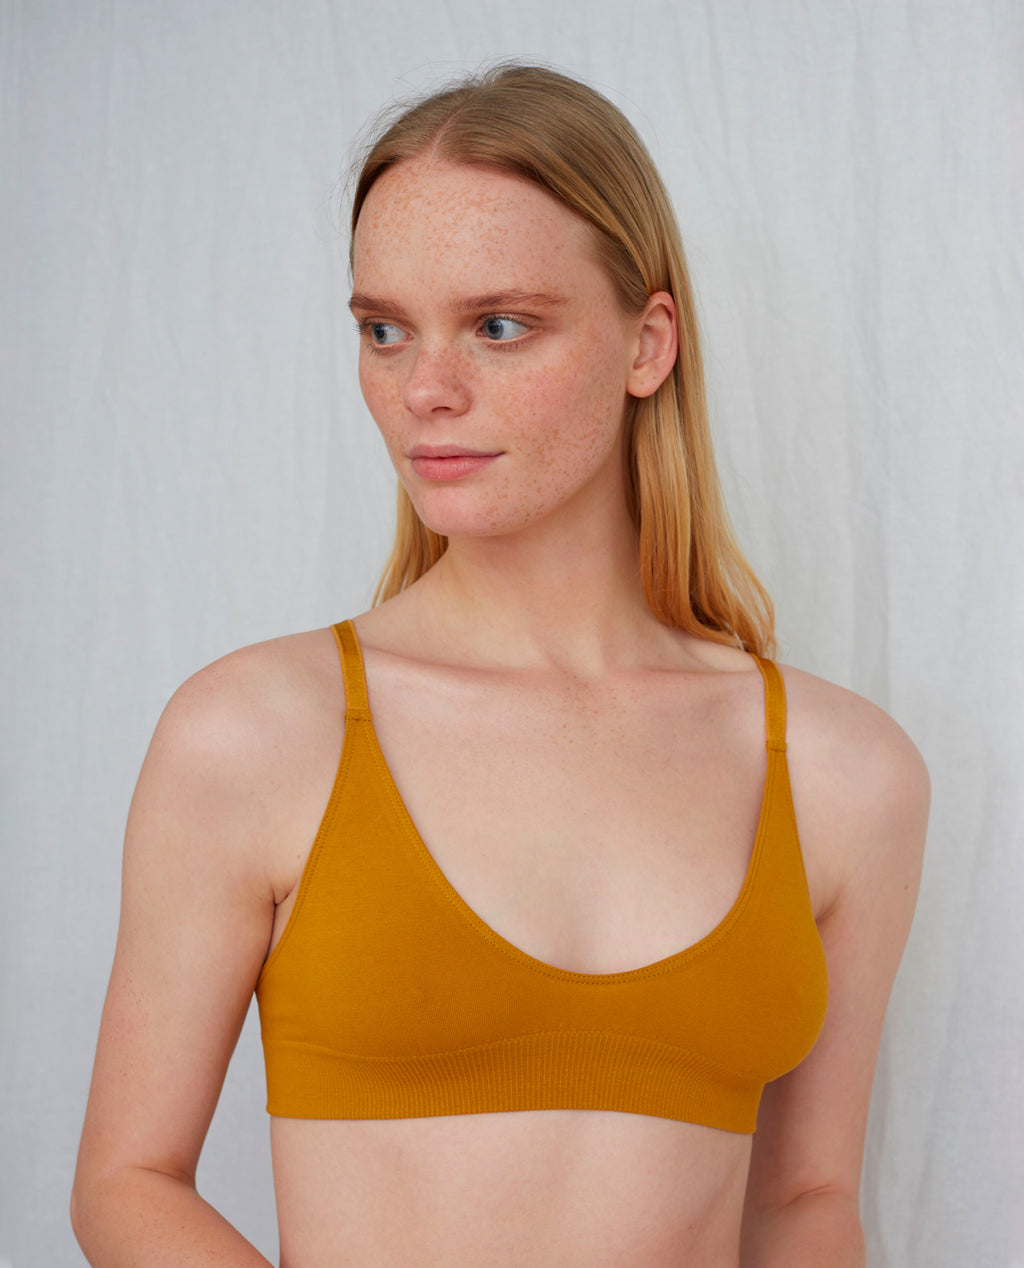 ILZE Organic Cotton Bra In Ocre